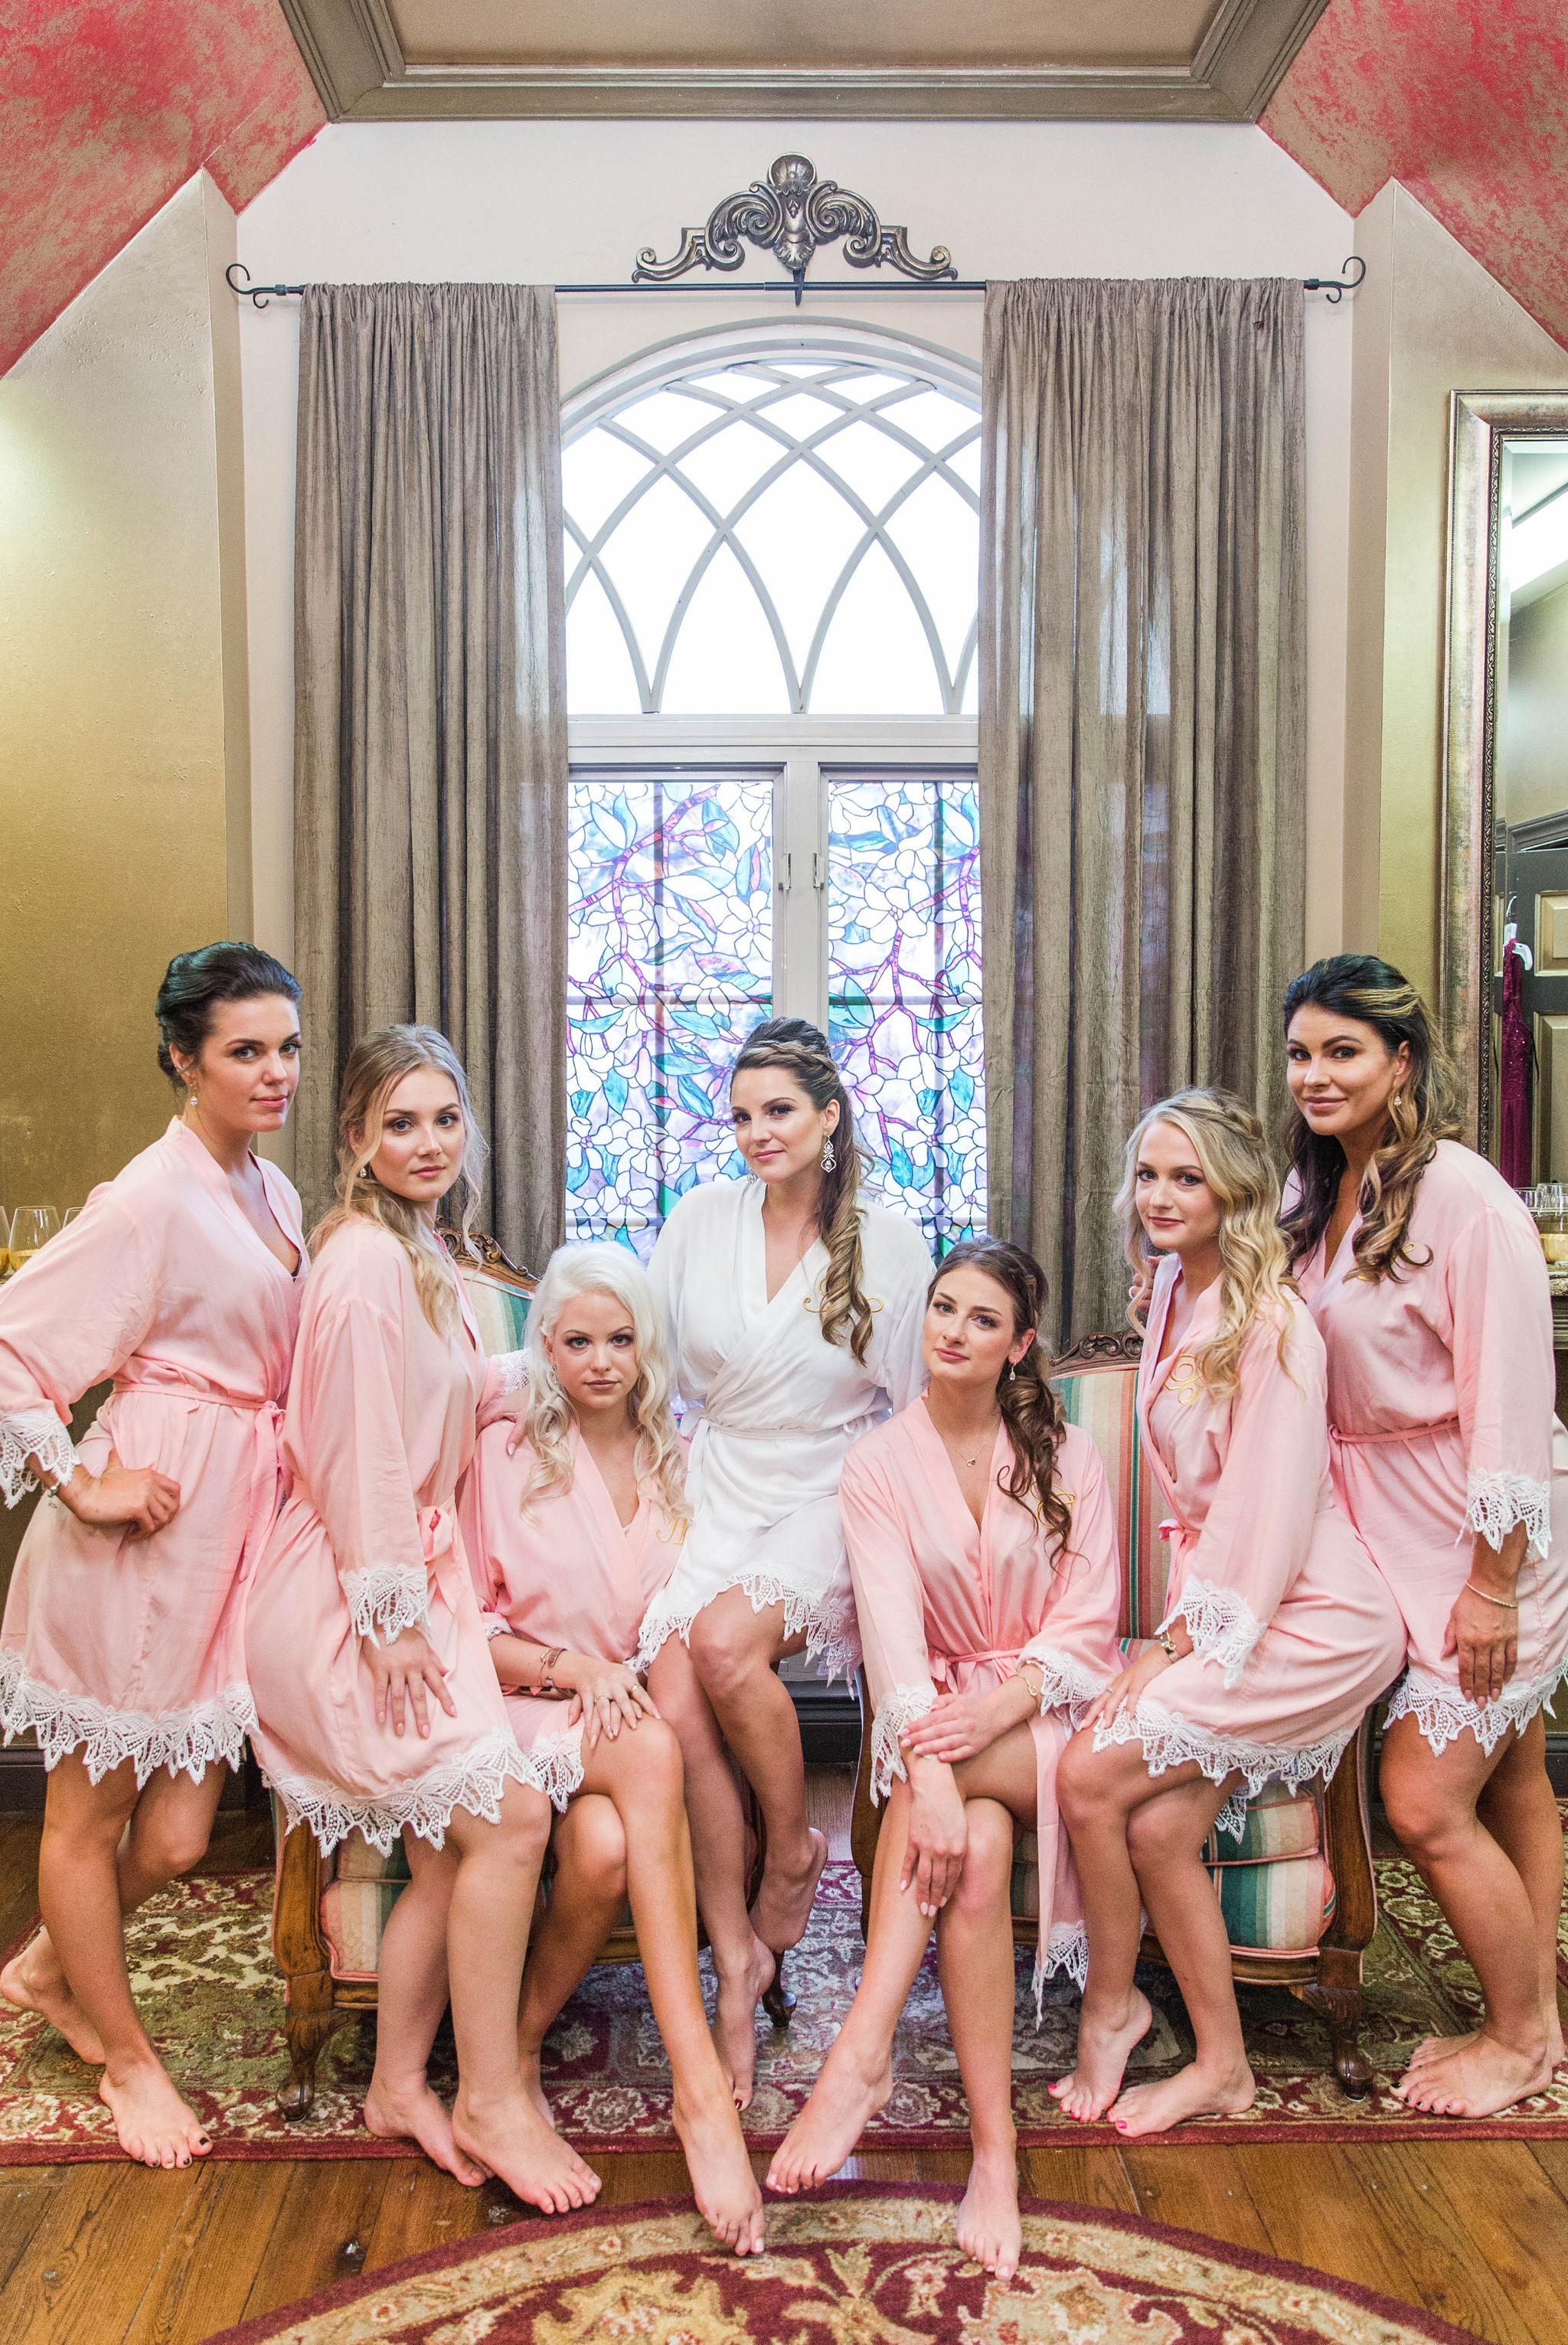 Bride and Bridesmaids hanging out in blush robes getting ready - Honolulu Oahu Hawaii Wedding Photographer